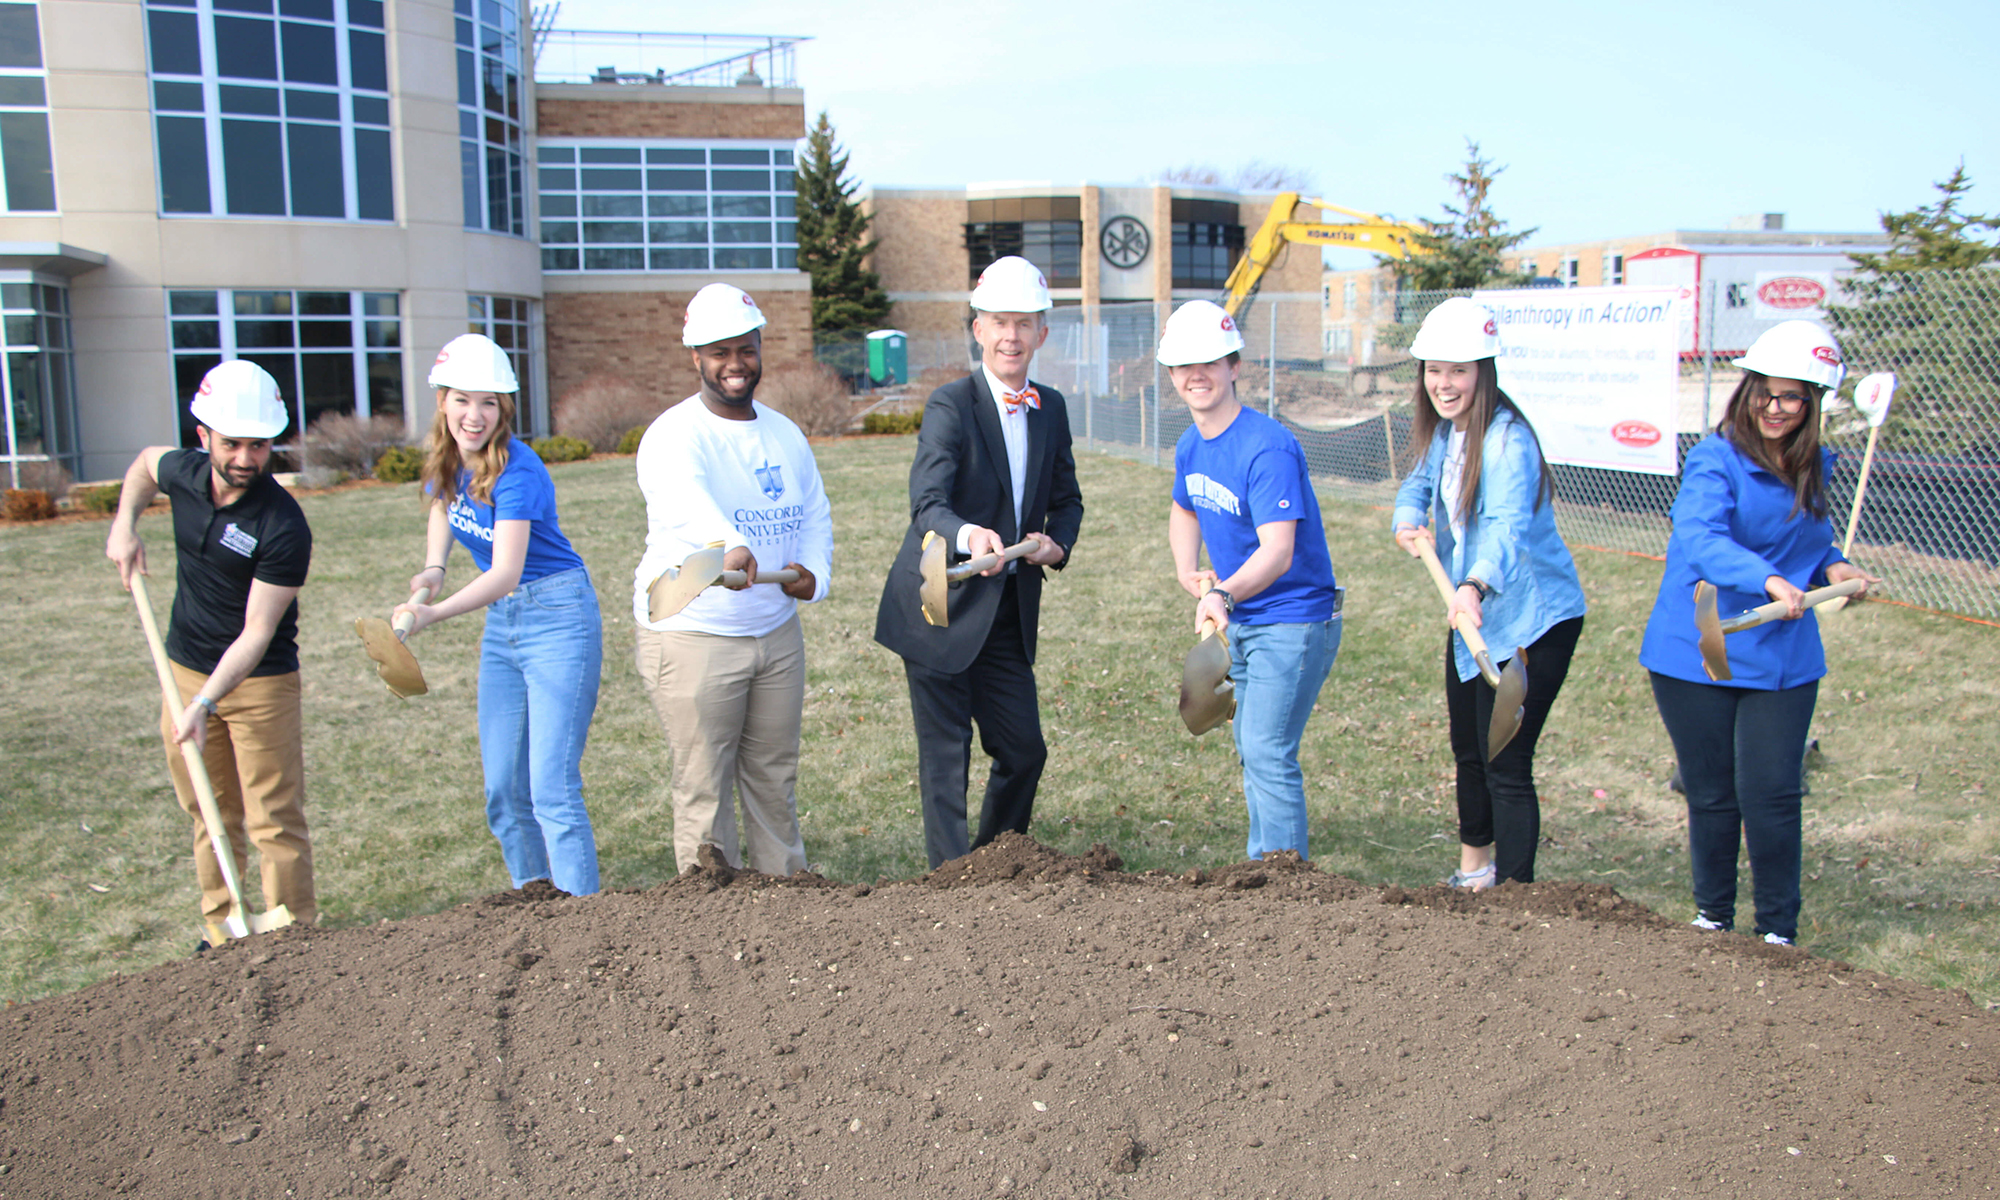 Students help President Ferry ceremoniously shovel the dirt for the new academic building.